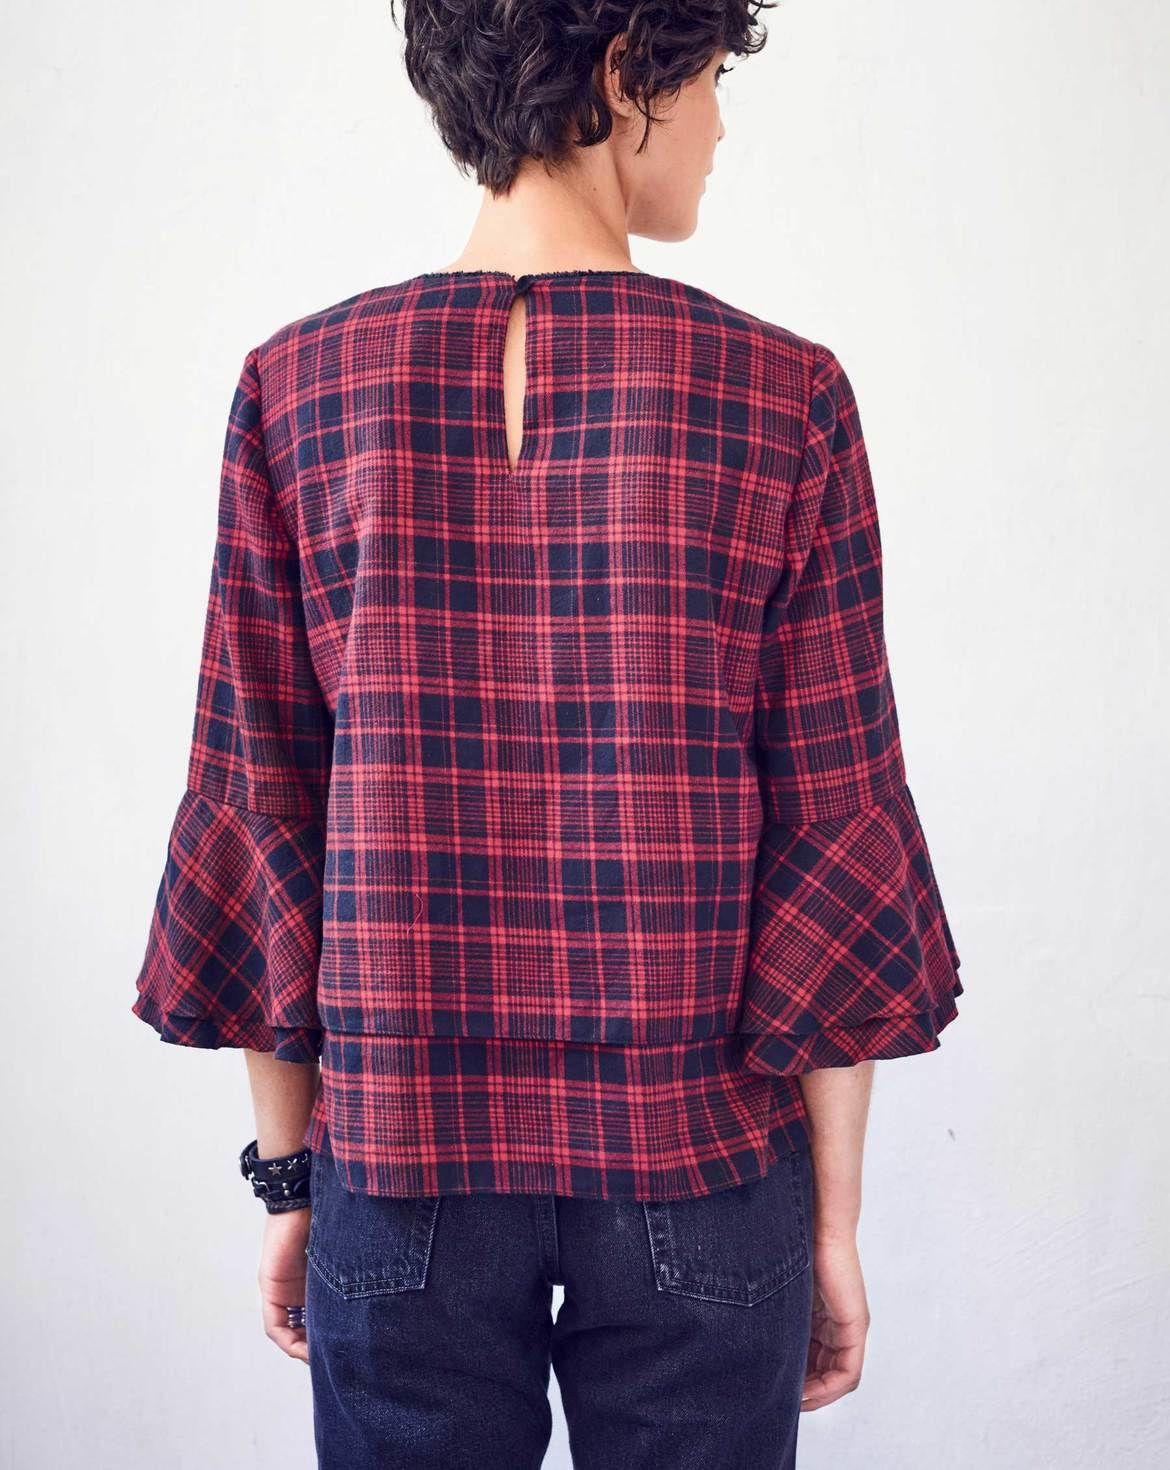 Schnittmuster Bluse 10/2017 #111B